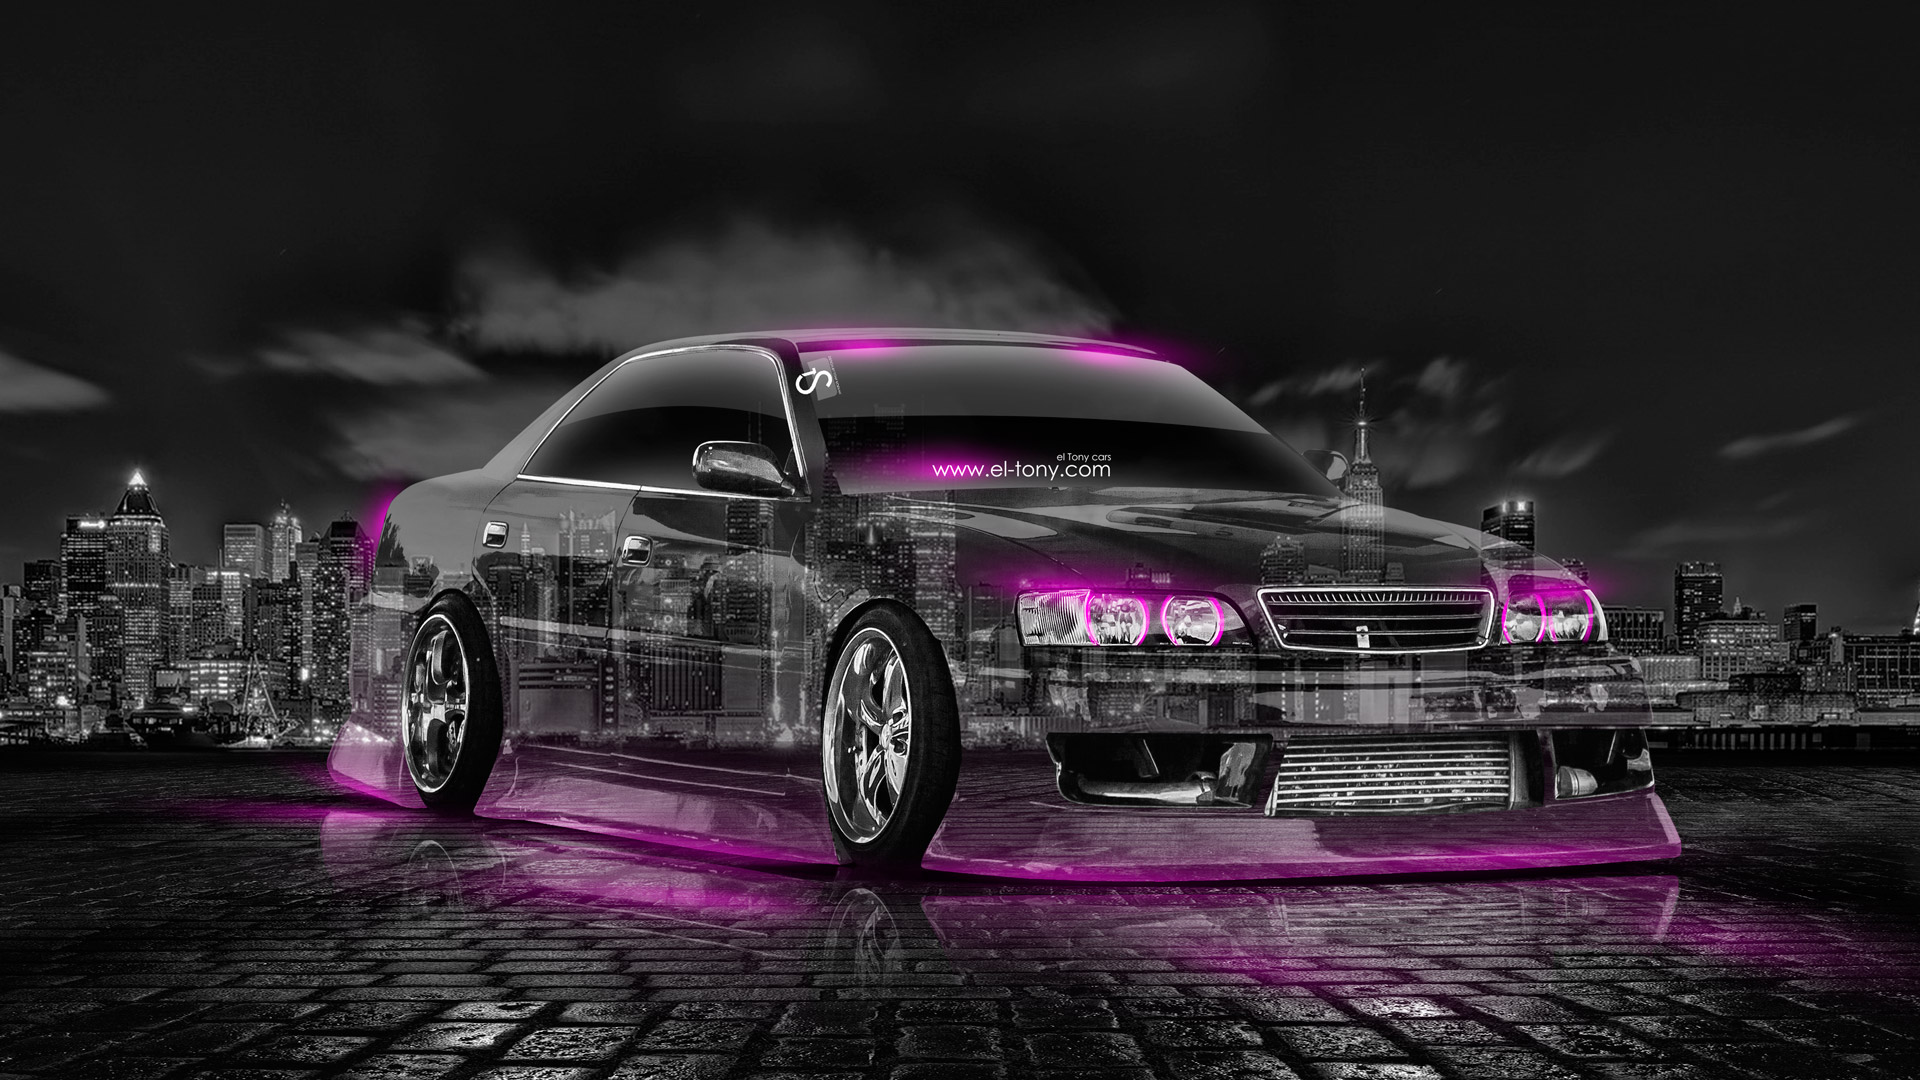 Toyota Chaser JZX100 JDM Crystal City Car 2014